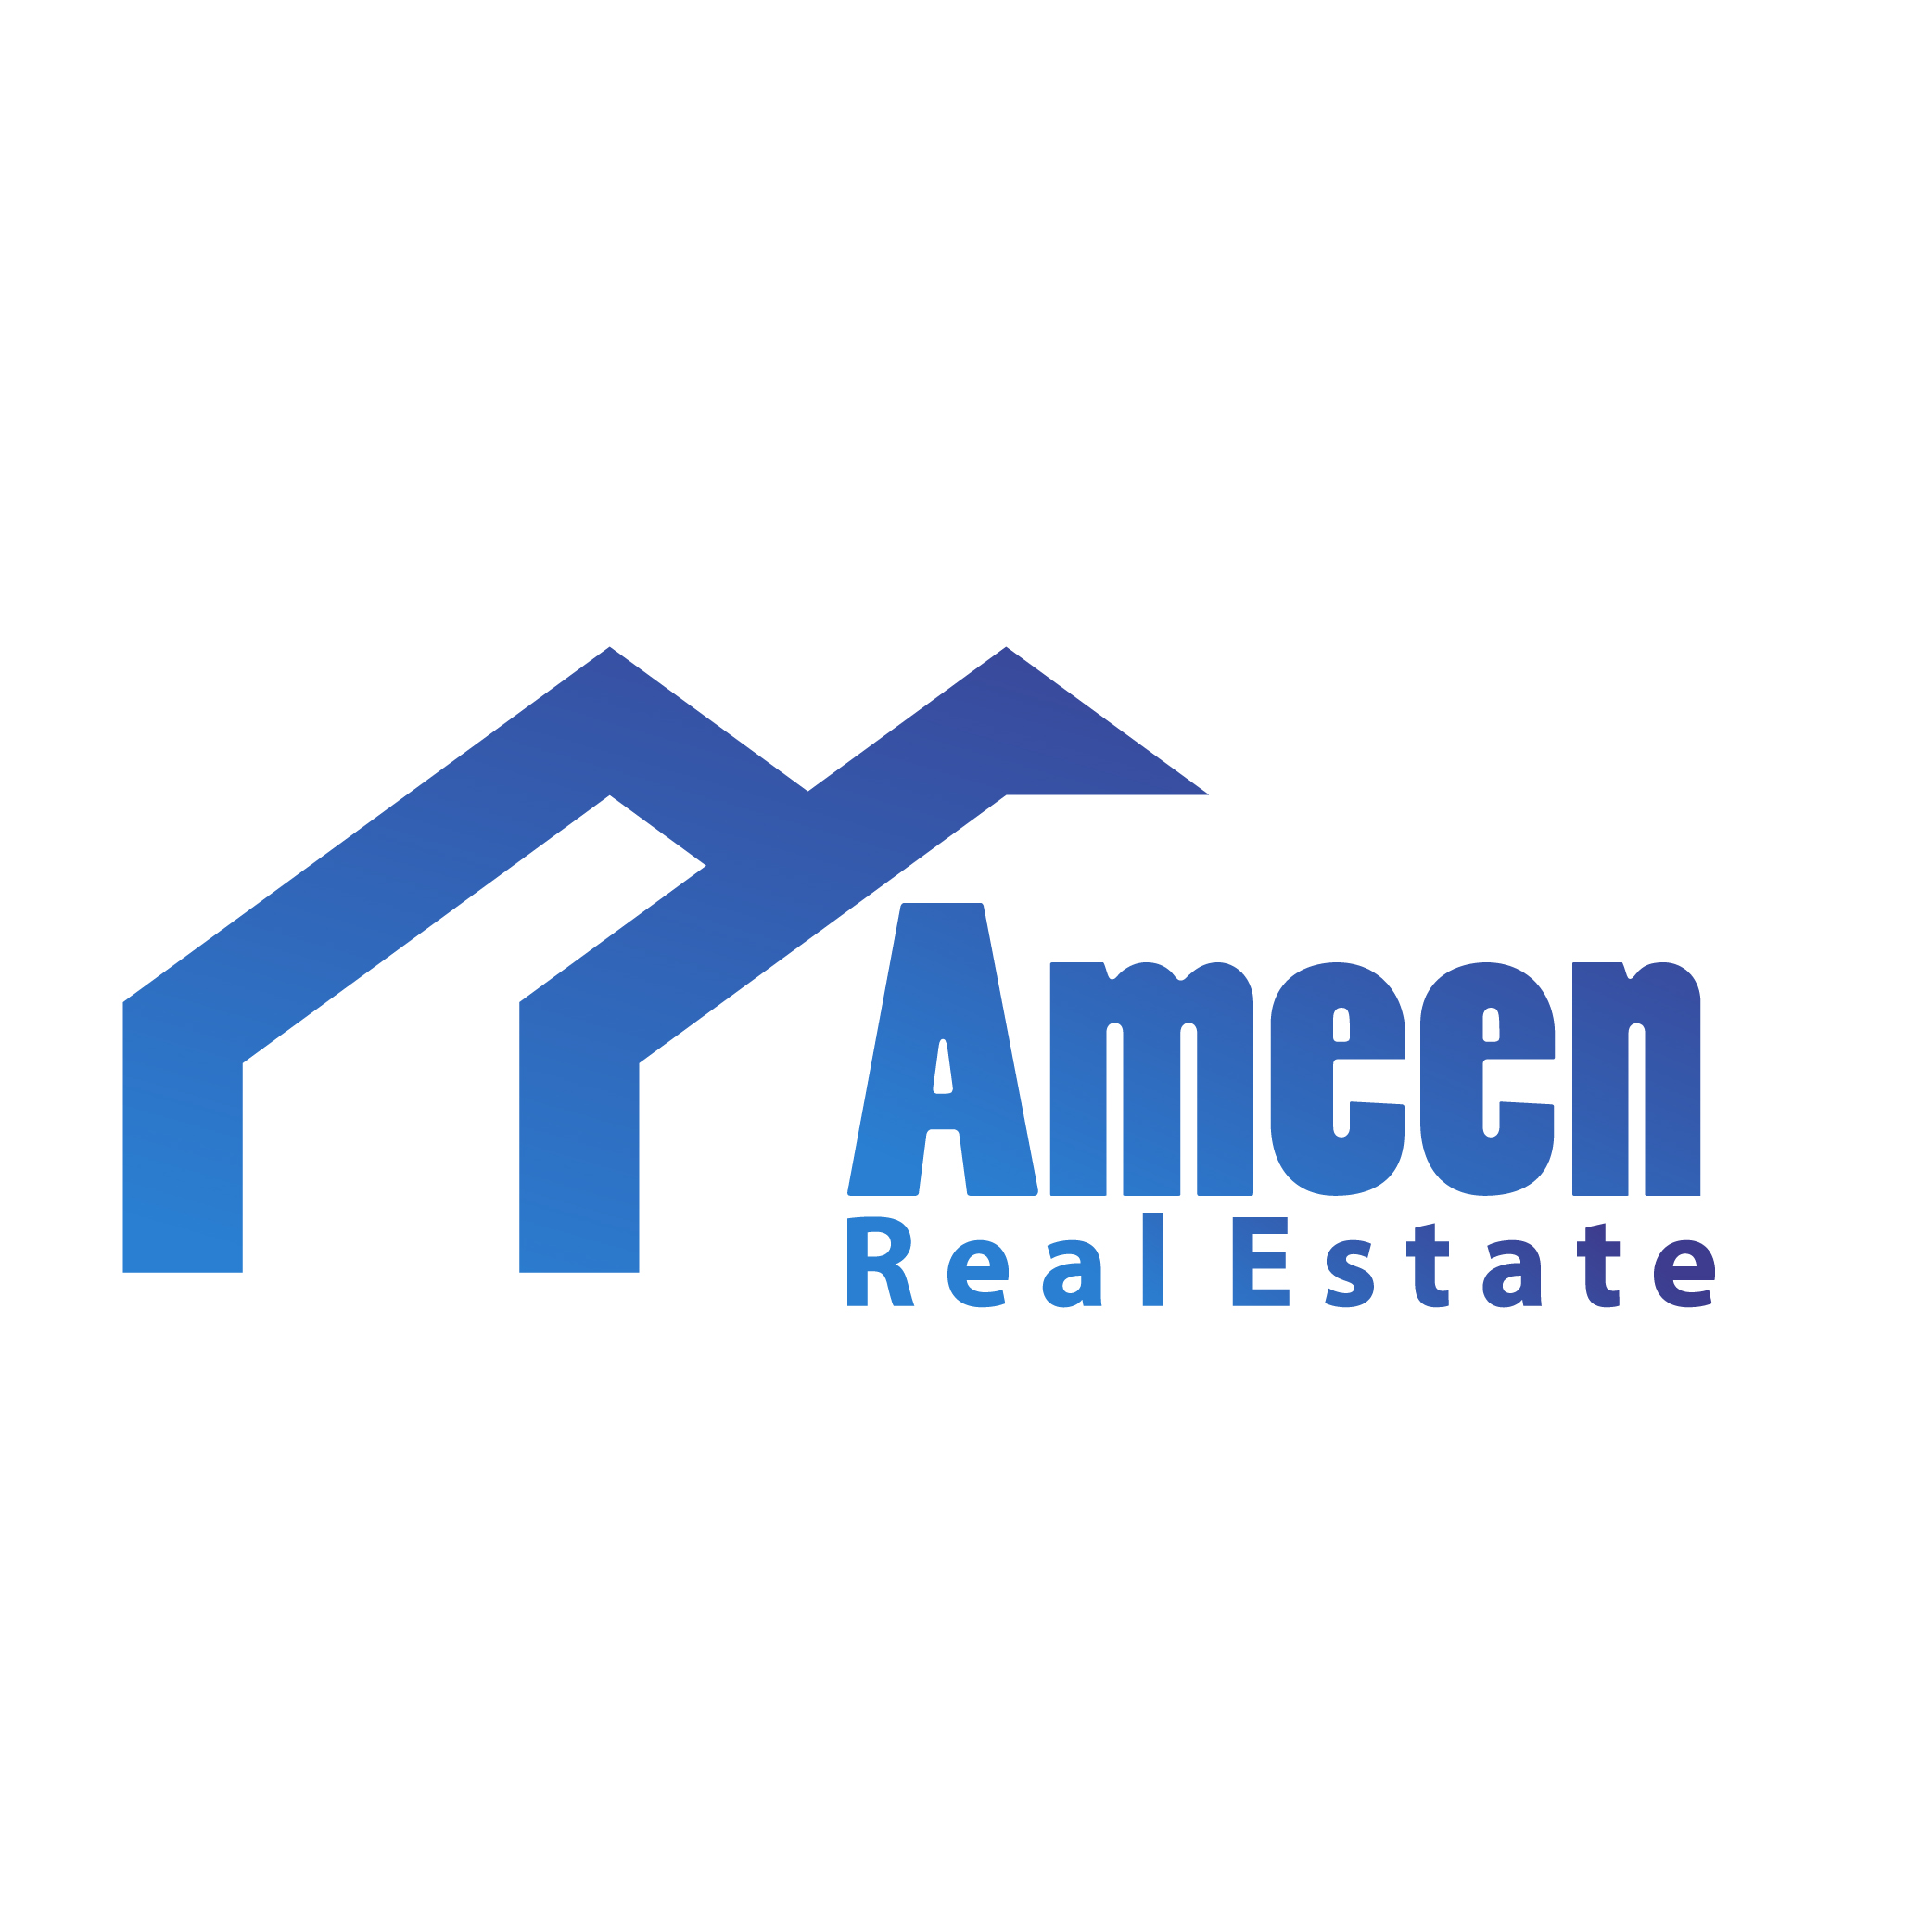 Ameen Real Estate